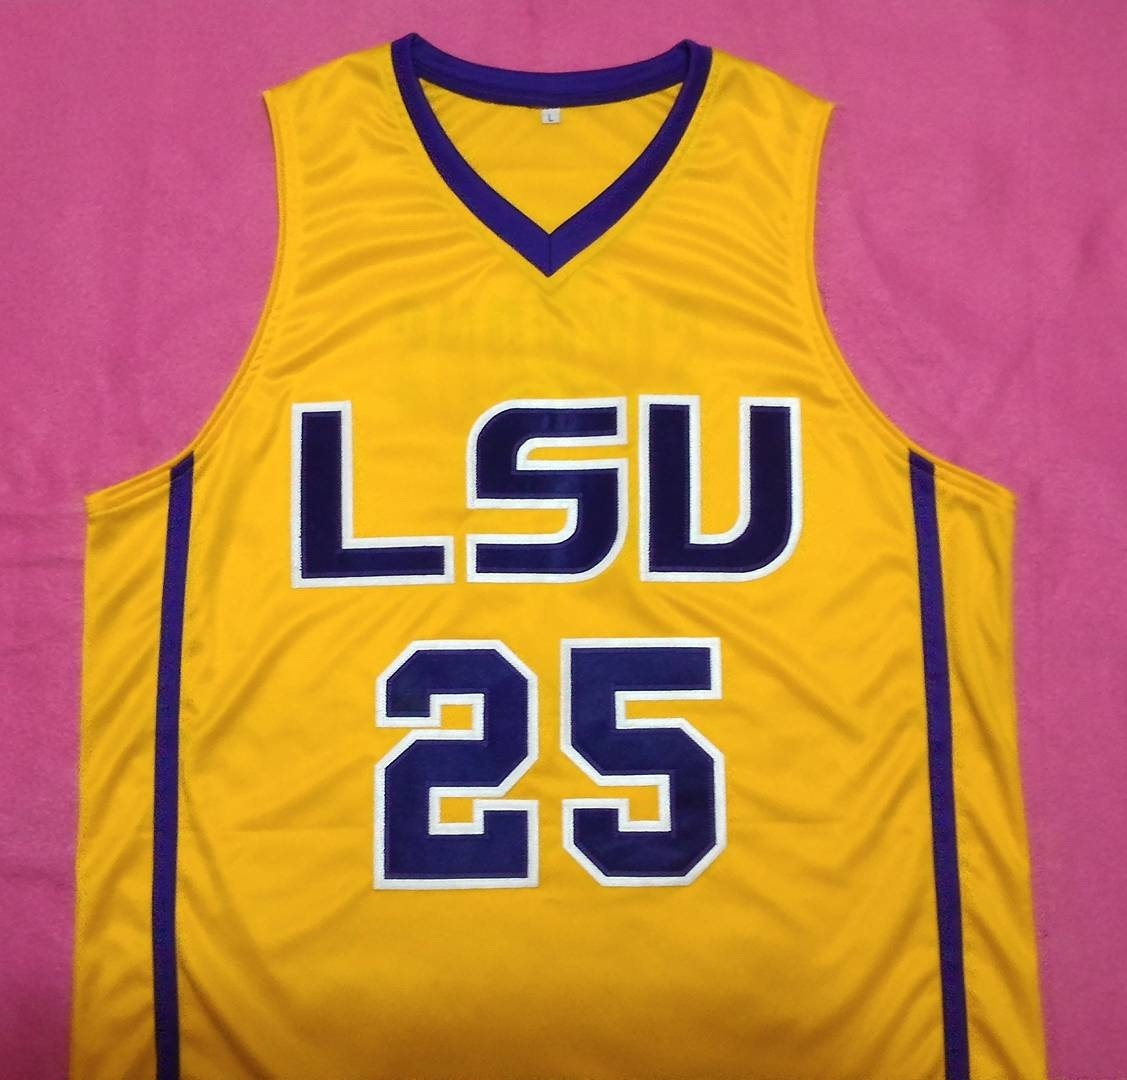 1e0b4756fc9e Ben Simmons Lsu Tigers Gold College Jersey and similar items. 13410873  1313882251958793 1708722673 o